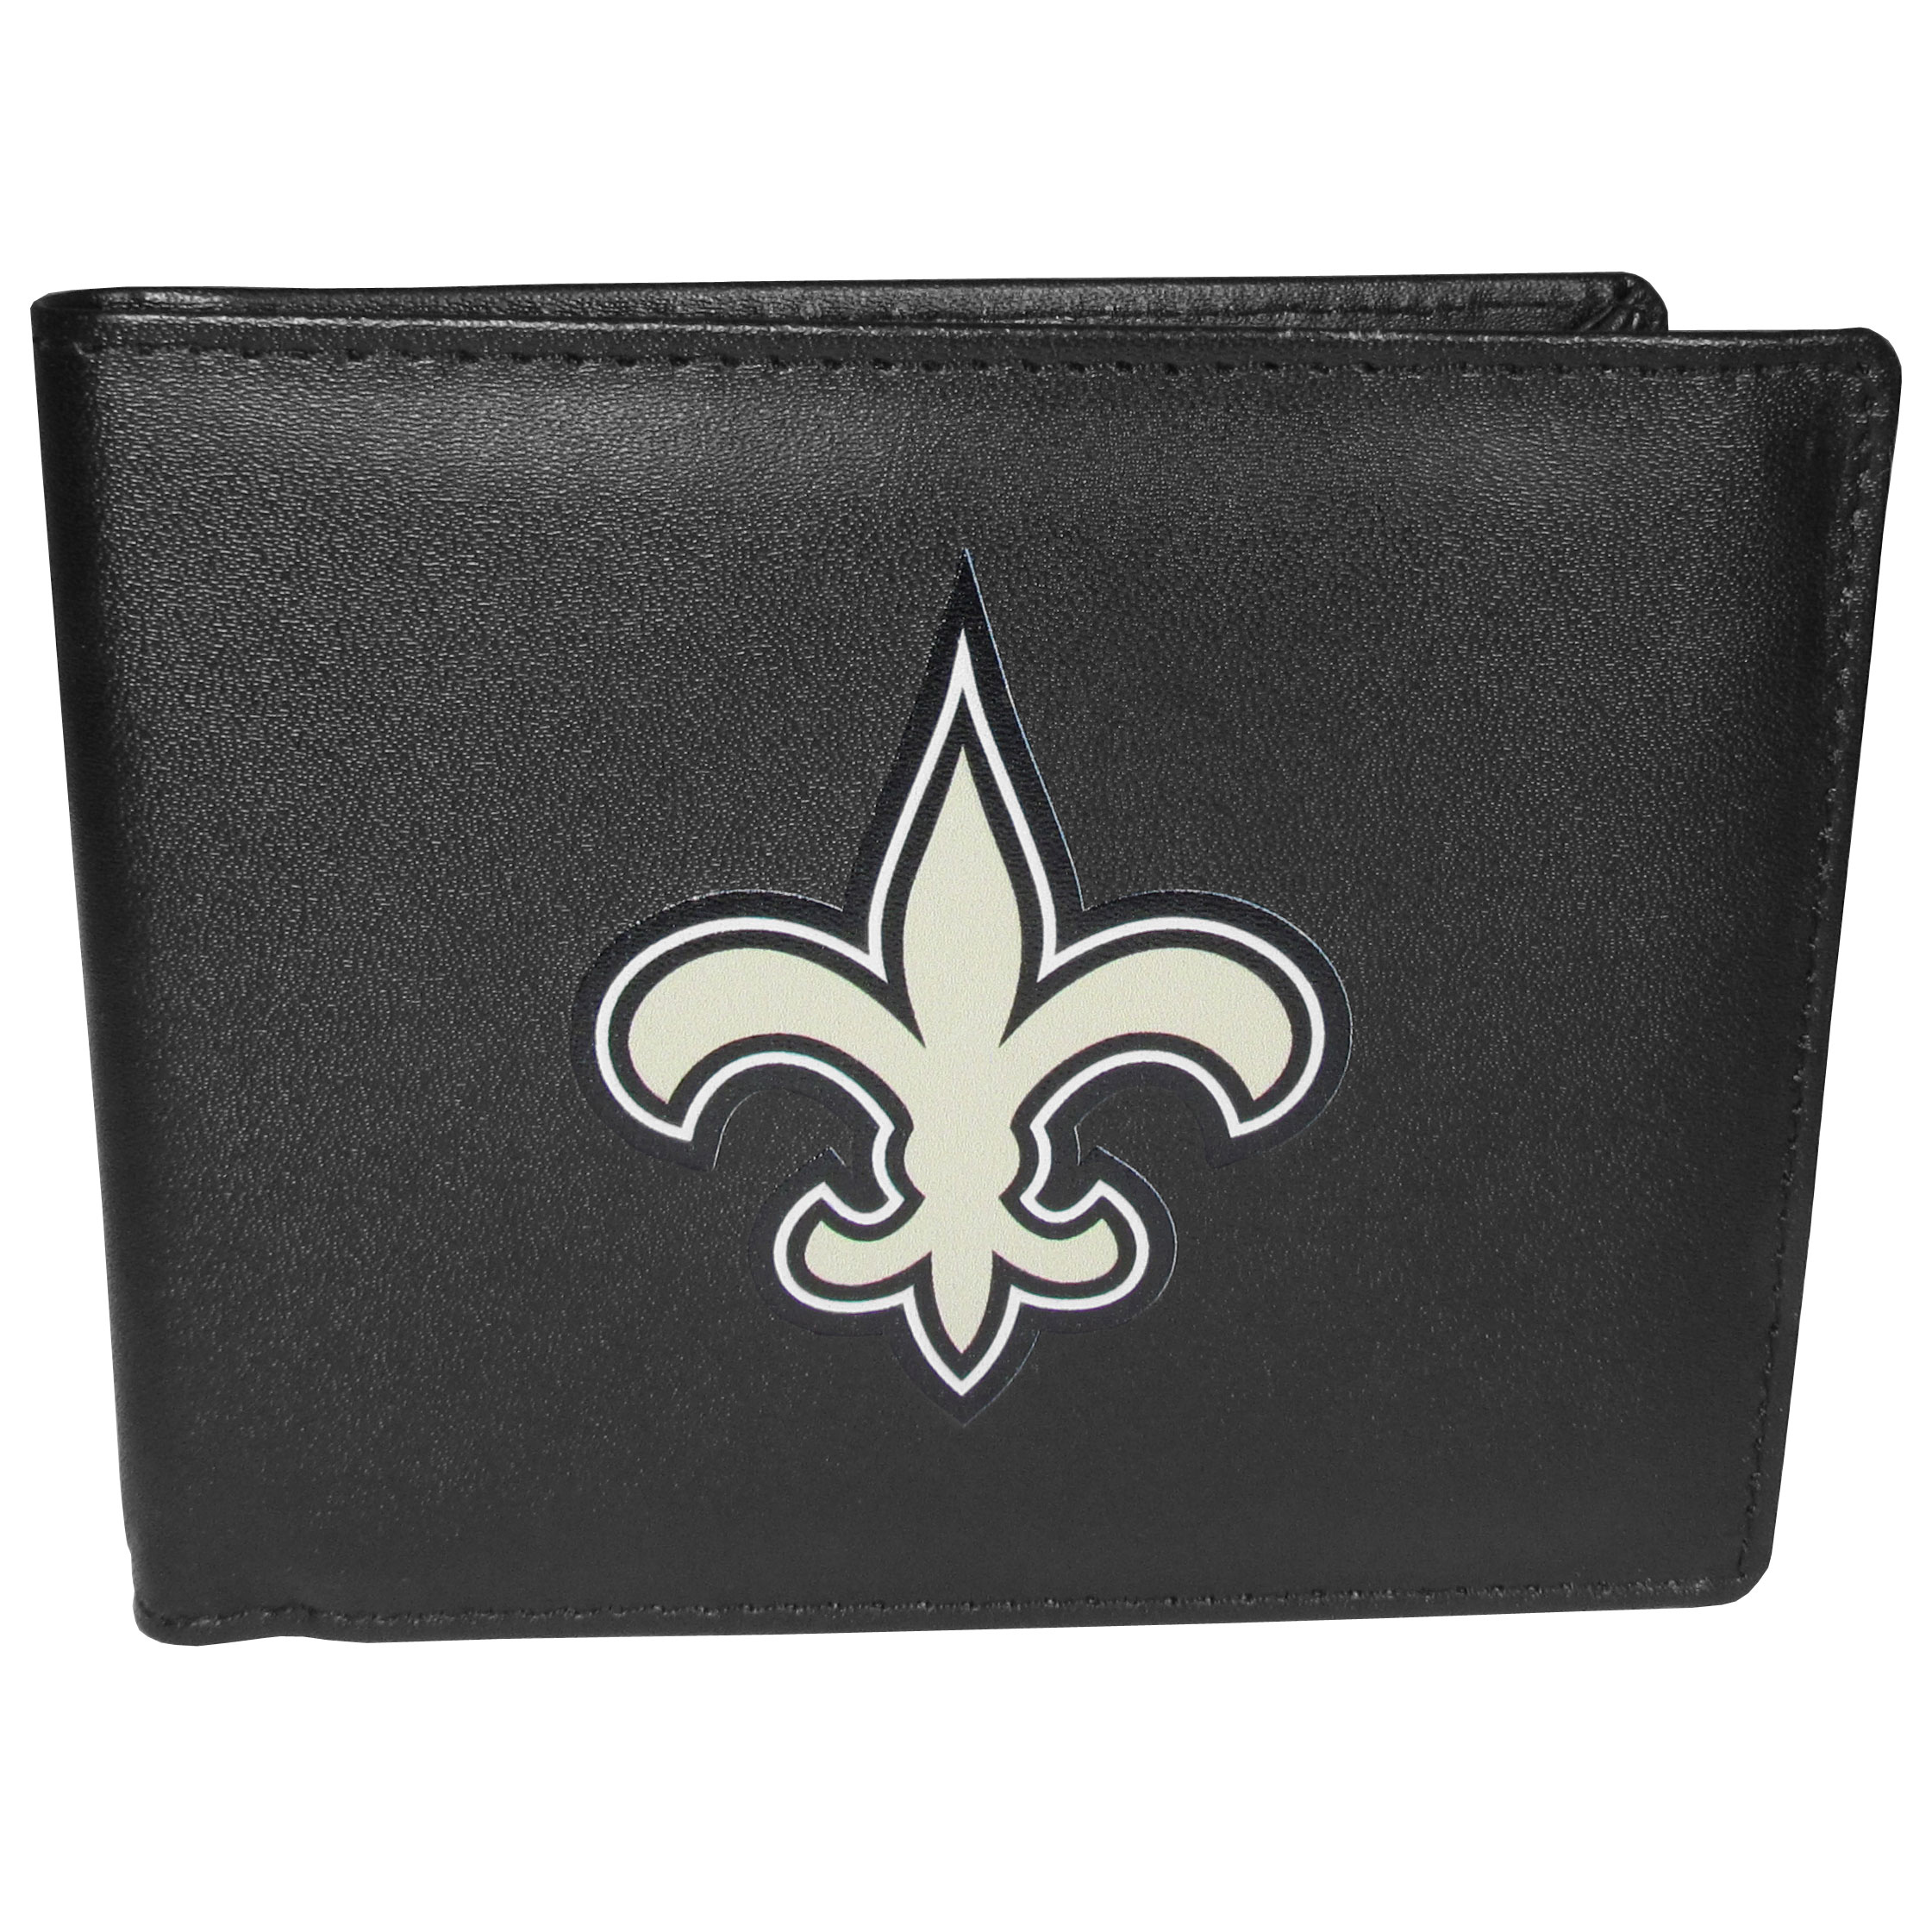 New Orleans Saints Bi-fold Wallet Large Logo - Sports fans do not have to sacrifice style with this classic bi-fold wallet that sports the New Orleans Saints extra large logo. This men's fashion accessory has a leather grain look and expert craftmanship for a quality wallet at a great price. The wallet features inner credit card slots, windowed ID slot and a large billfold pocket. The front of the wallet features a printed team logo.